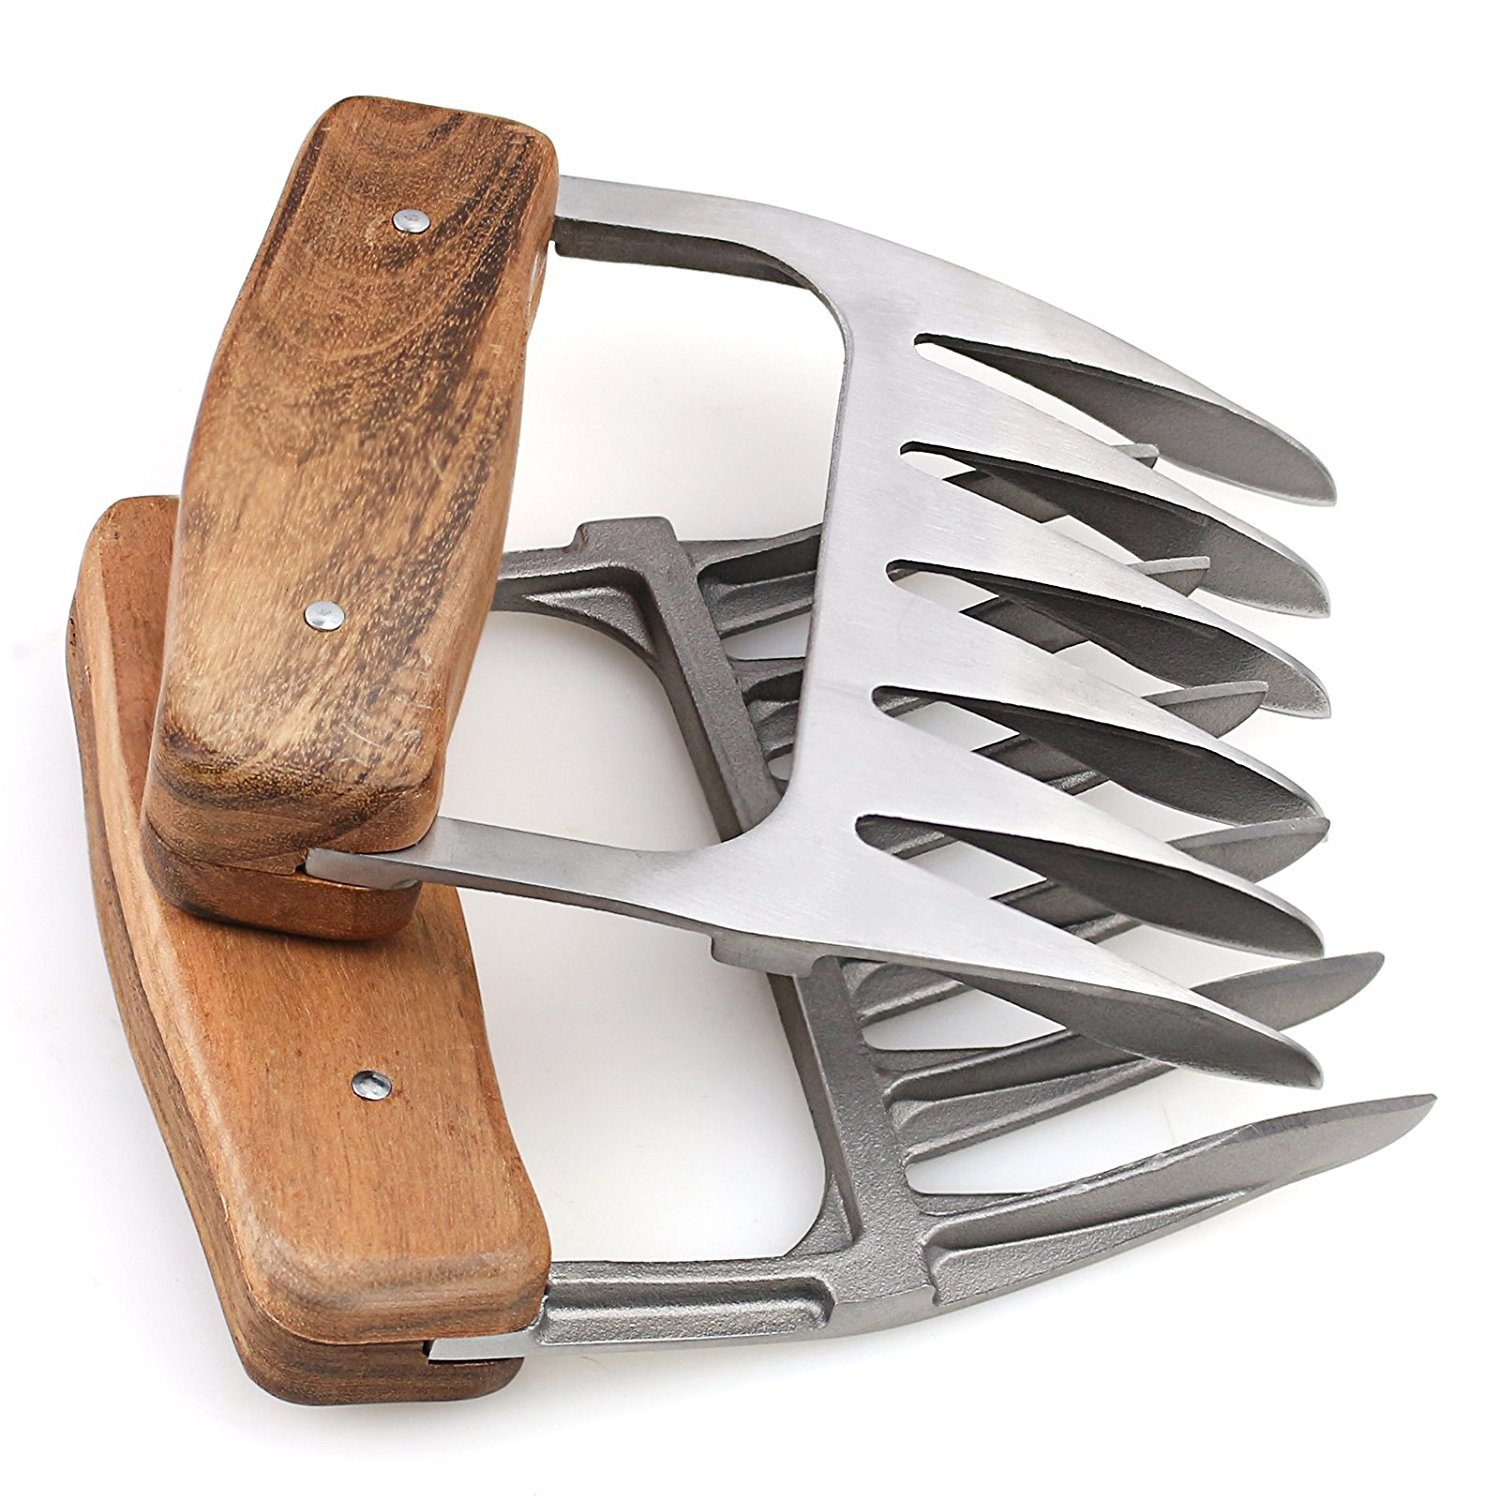 Metal Meat Claws, 1Easylife 18/8 Stainless Steel Meat Forks with Wooden Handle, Best Meat Claws for Shredding, Pulling, Handing, Lifting & Serving Pork, Turkey, Chicken, Brisket (2 Pcs,BPA Free) by 1Easylife